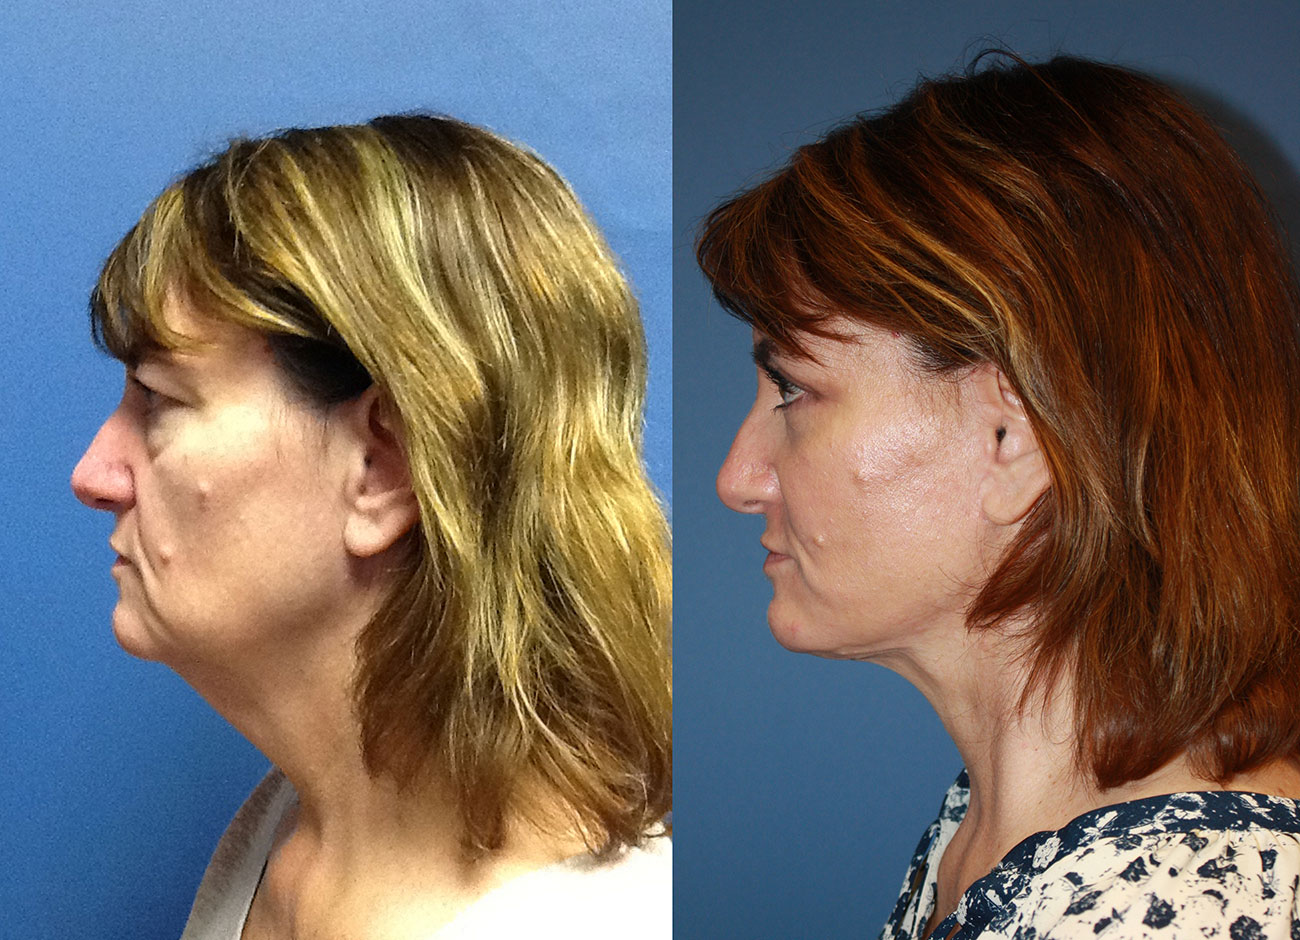 Owsley_Plastic_Surgery_Coeur_d_Alene_Idaho_Facelift_Procedure2